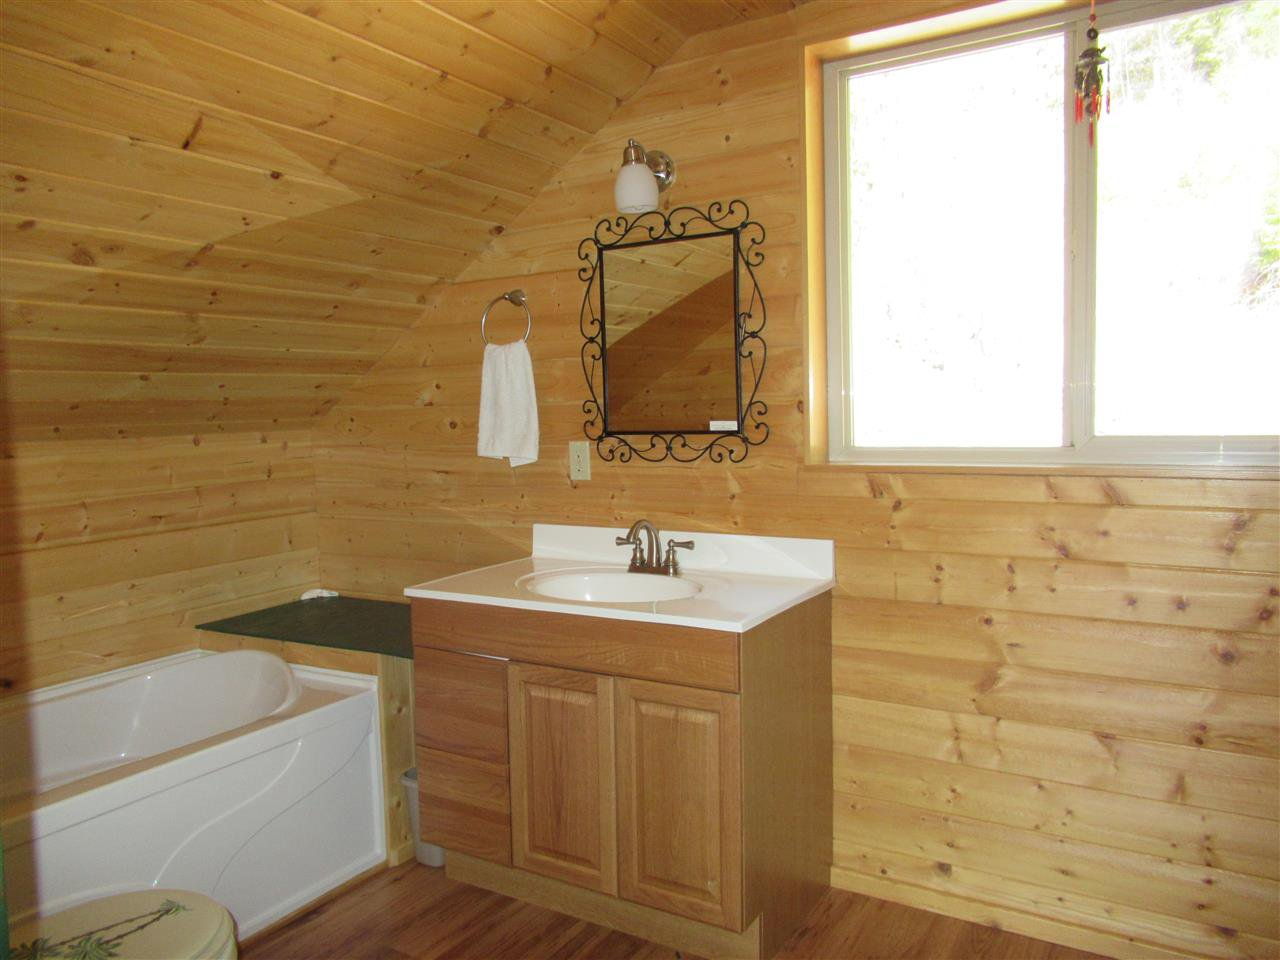 Photo 20: Photos: 6278 KNIGHT Road: Likely House for sale (Williams Lake (Zone 27))  : MLS®# R2361221